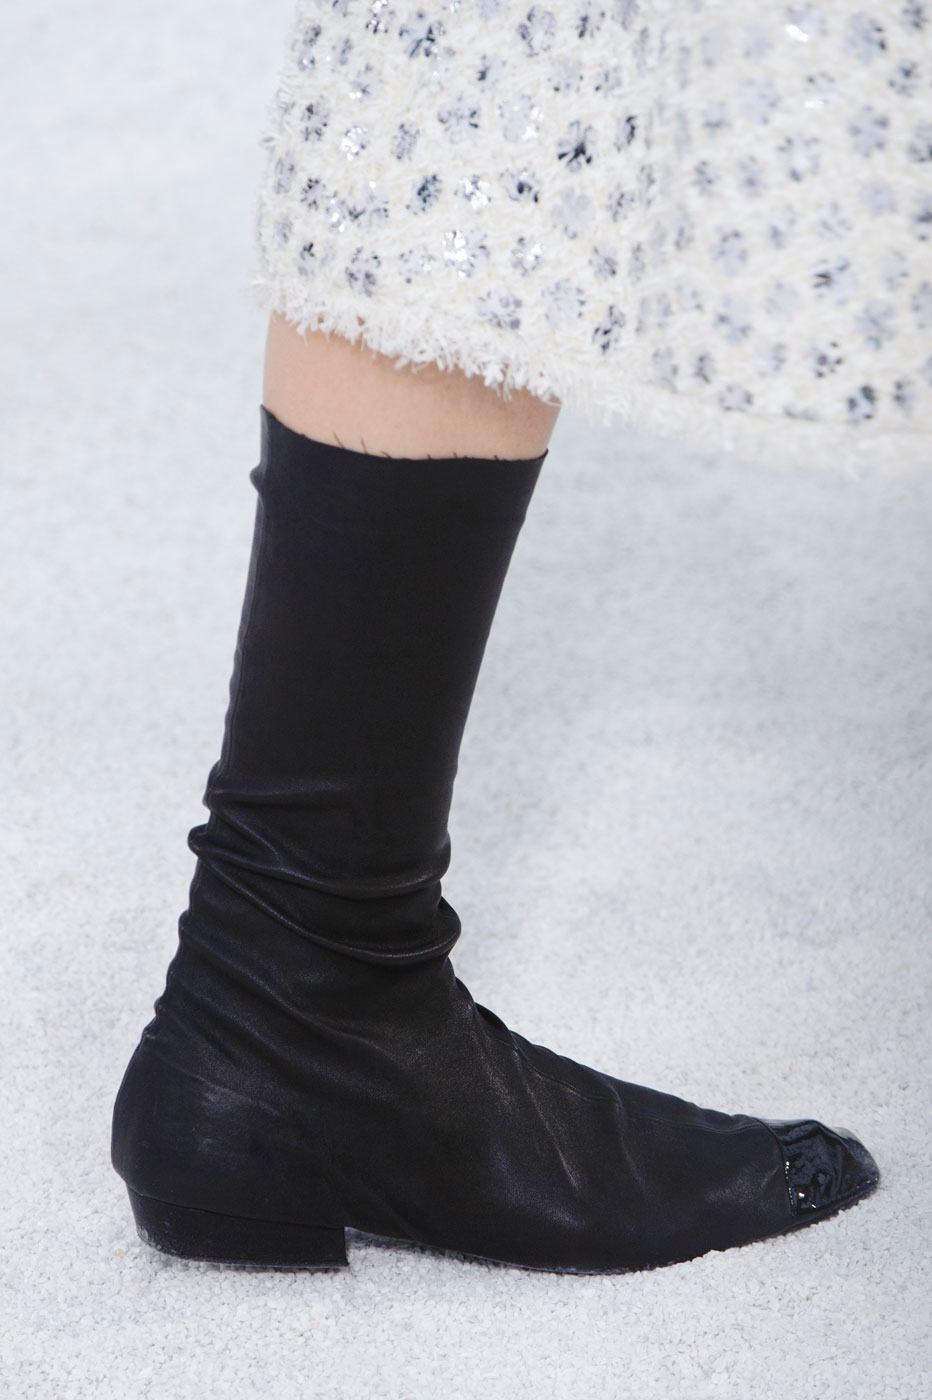 Chanel-fashion-runway-show-close-ups-haute-couture-paris-spring-summer-2015-the-impression-043